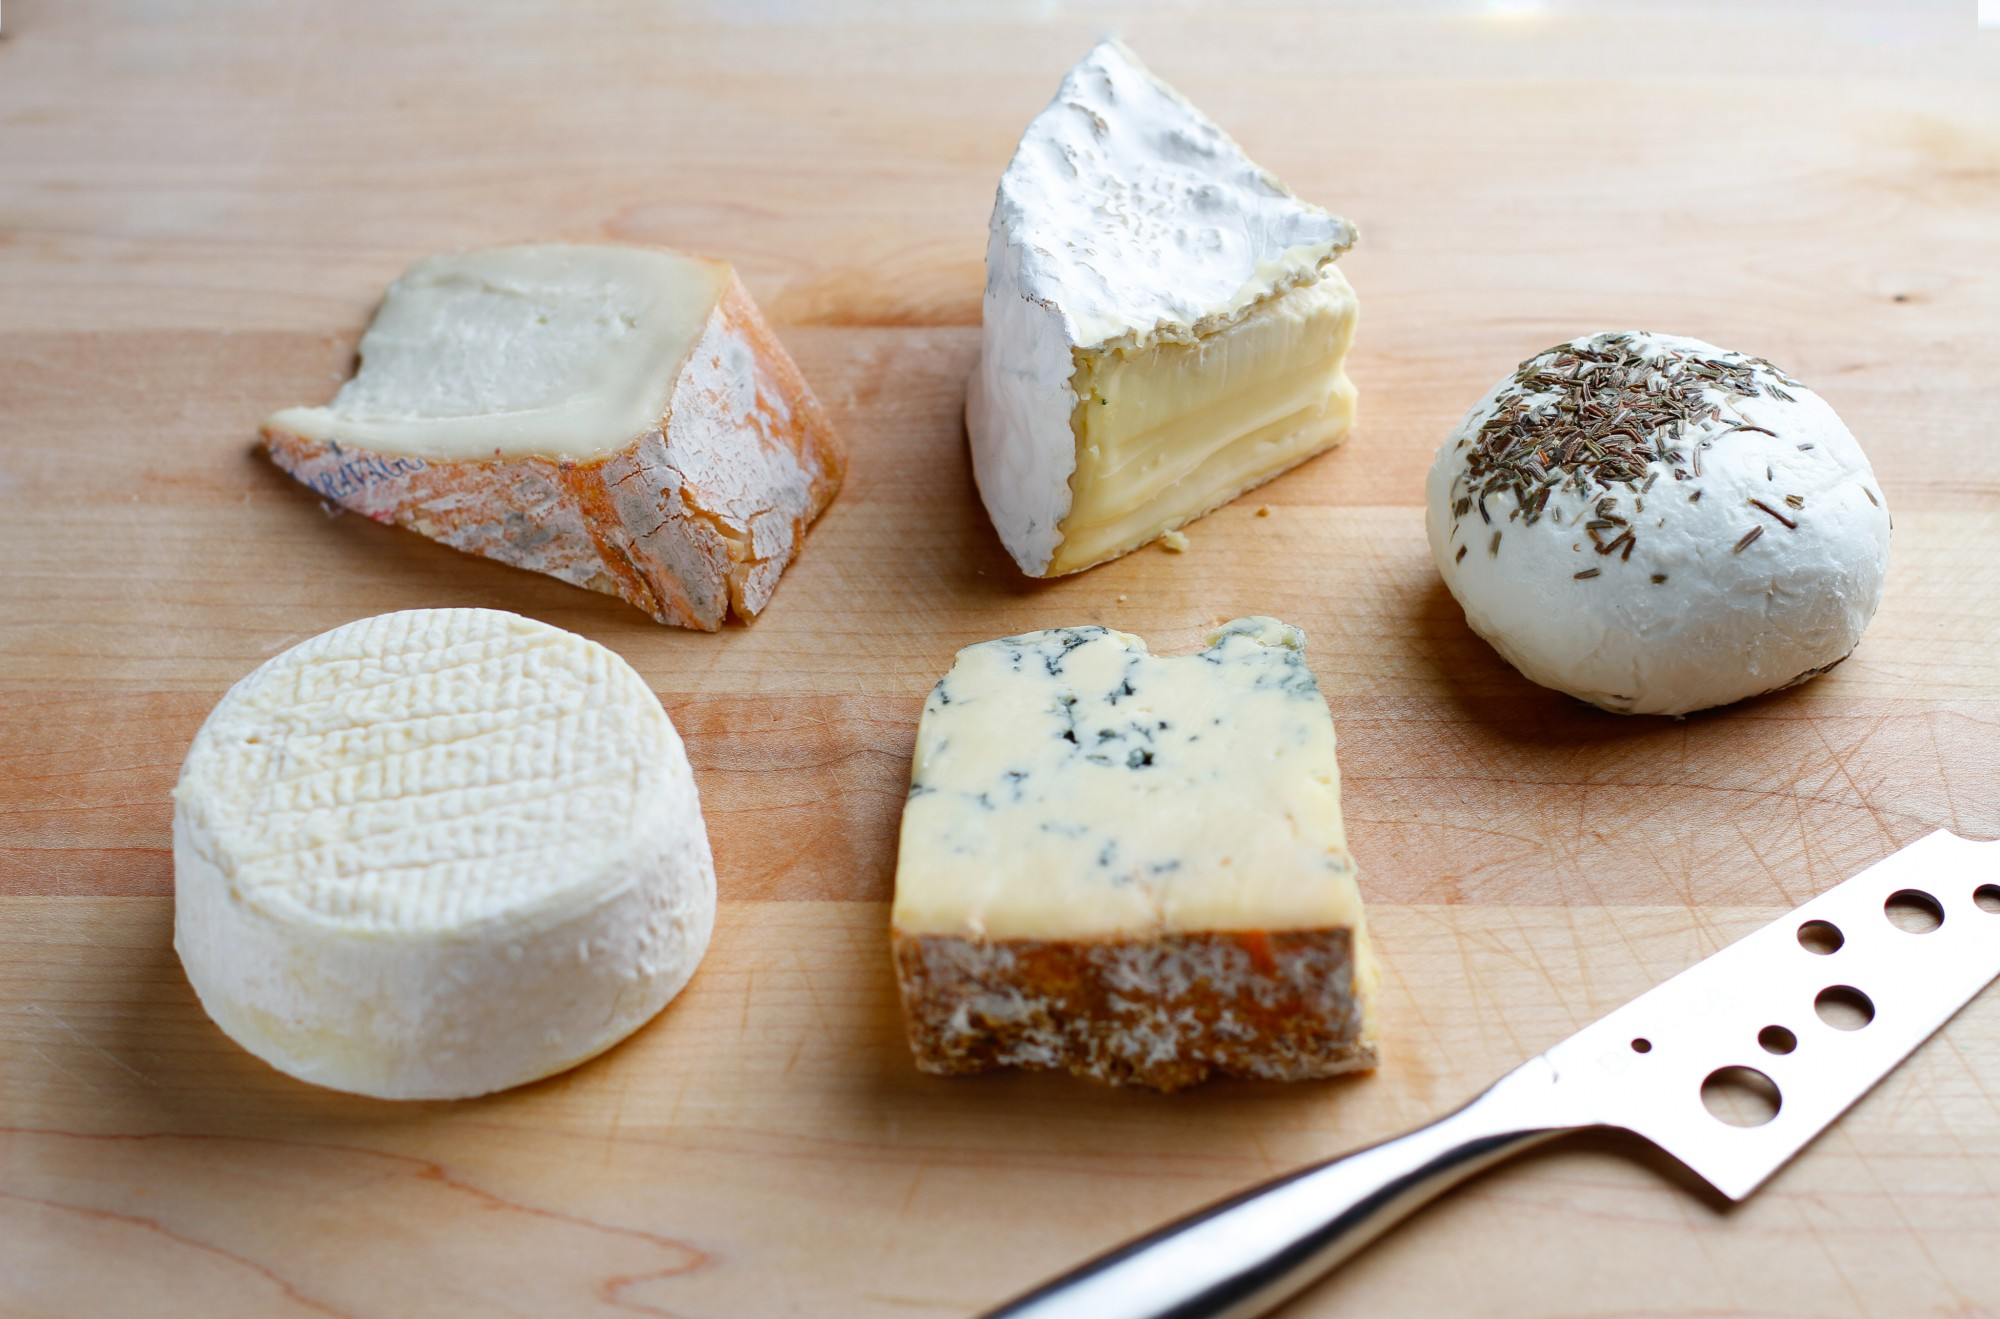 cheeses on wood with knife